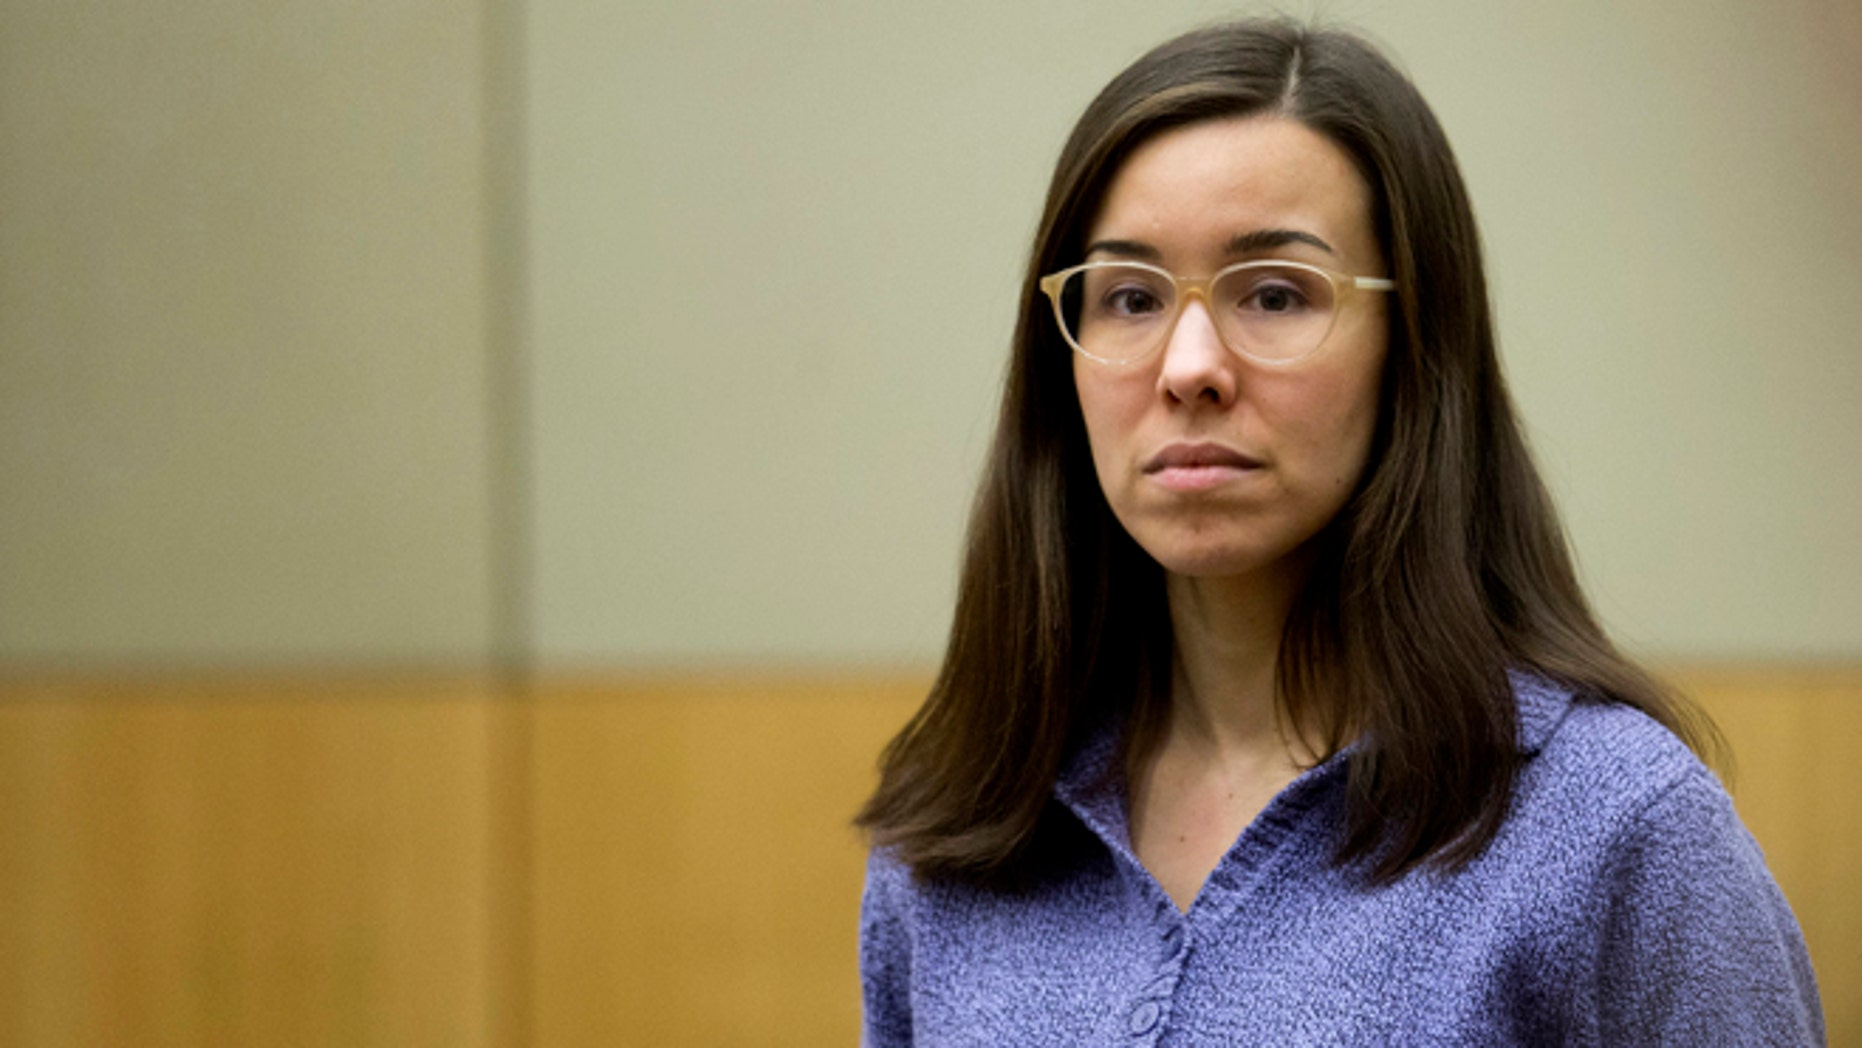 --FILE--In this Thursday, Feb. 12, 2015, file photo, Jodi Arias stands for the jury during her sentencing retrial at Maricopa County Superior Court, in Phoenix. Arias was spared the death penalty Thursday after jurors deadlocked on her punishment for killing her lover in 2008, meaning her sentence will be at most life in prison.(AP Photo/The Arizona Republic, Cheryl Evans, Pool)